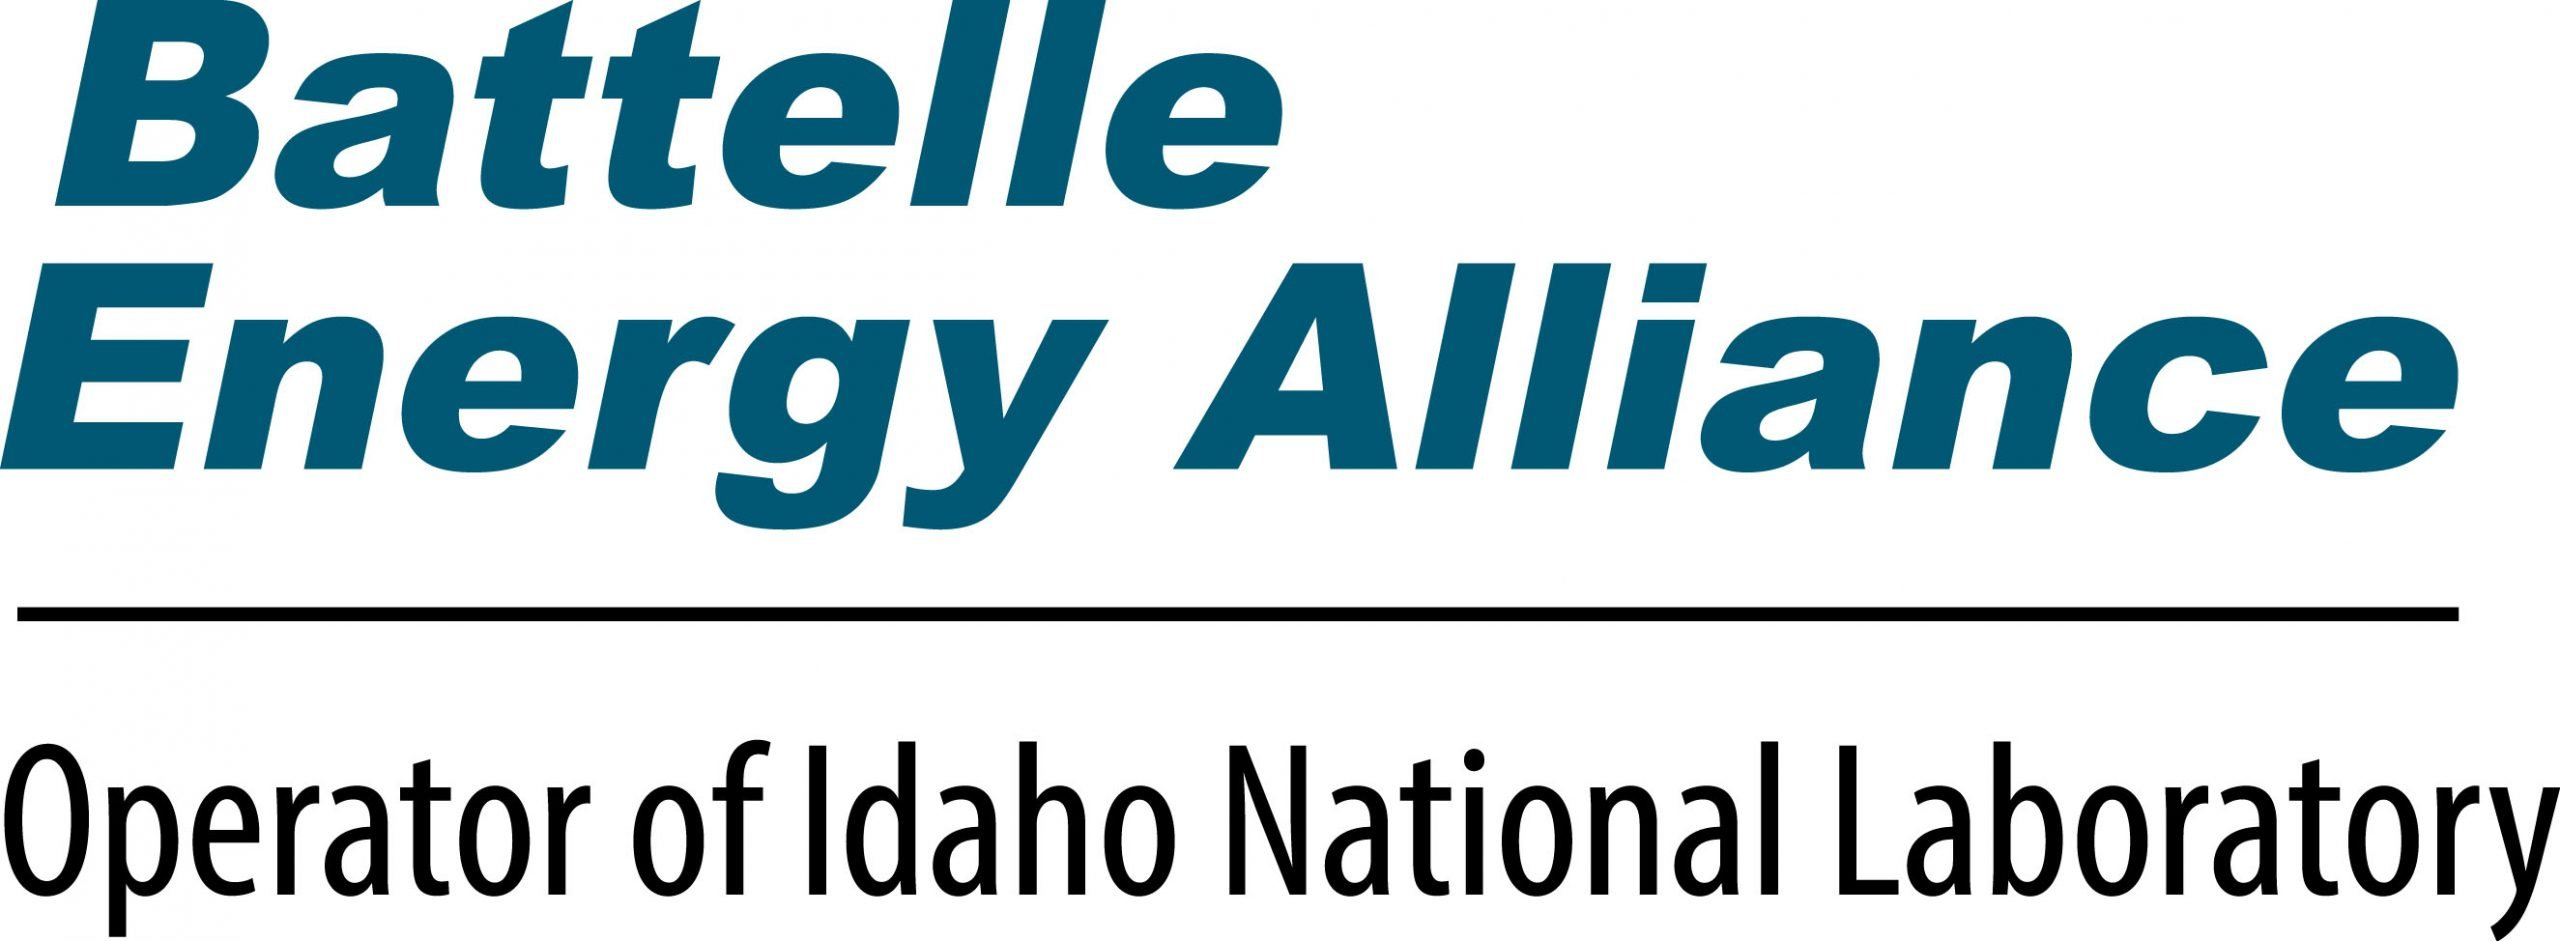 Idaho National Laboratory – Battelle Energy Alliance